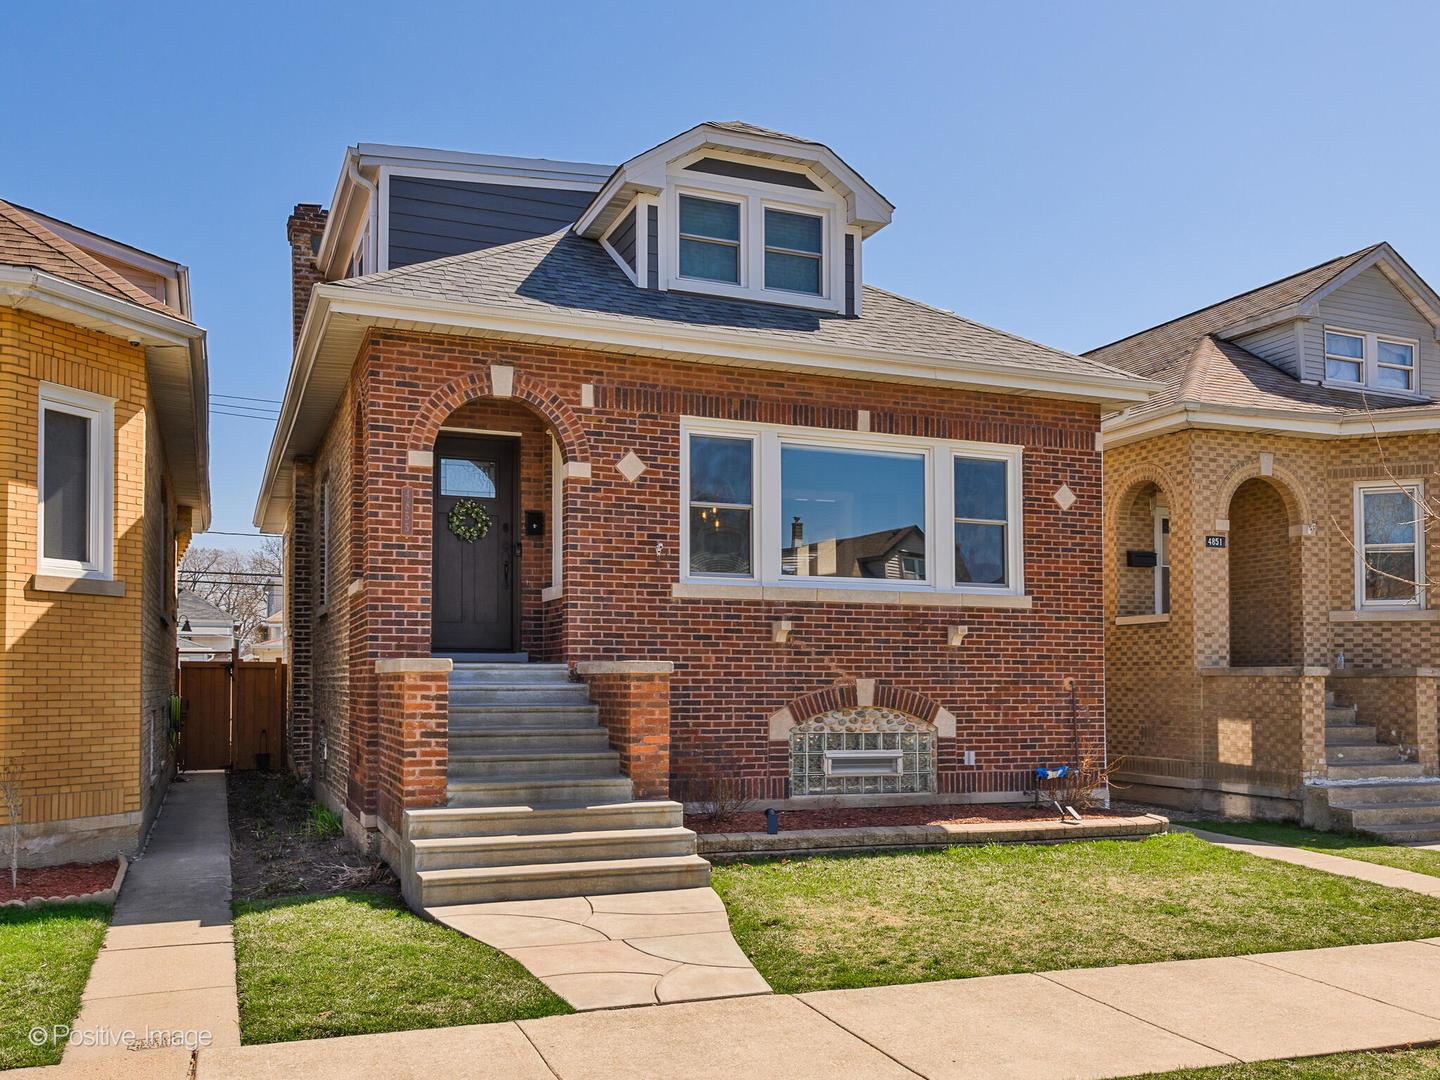 4855 N MERRIMAC Avenue, Chicago, IL 60630 - #: 11045336